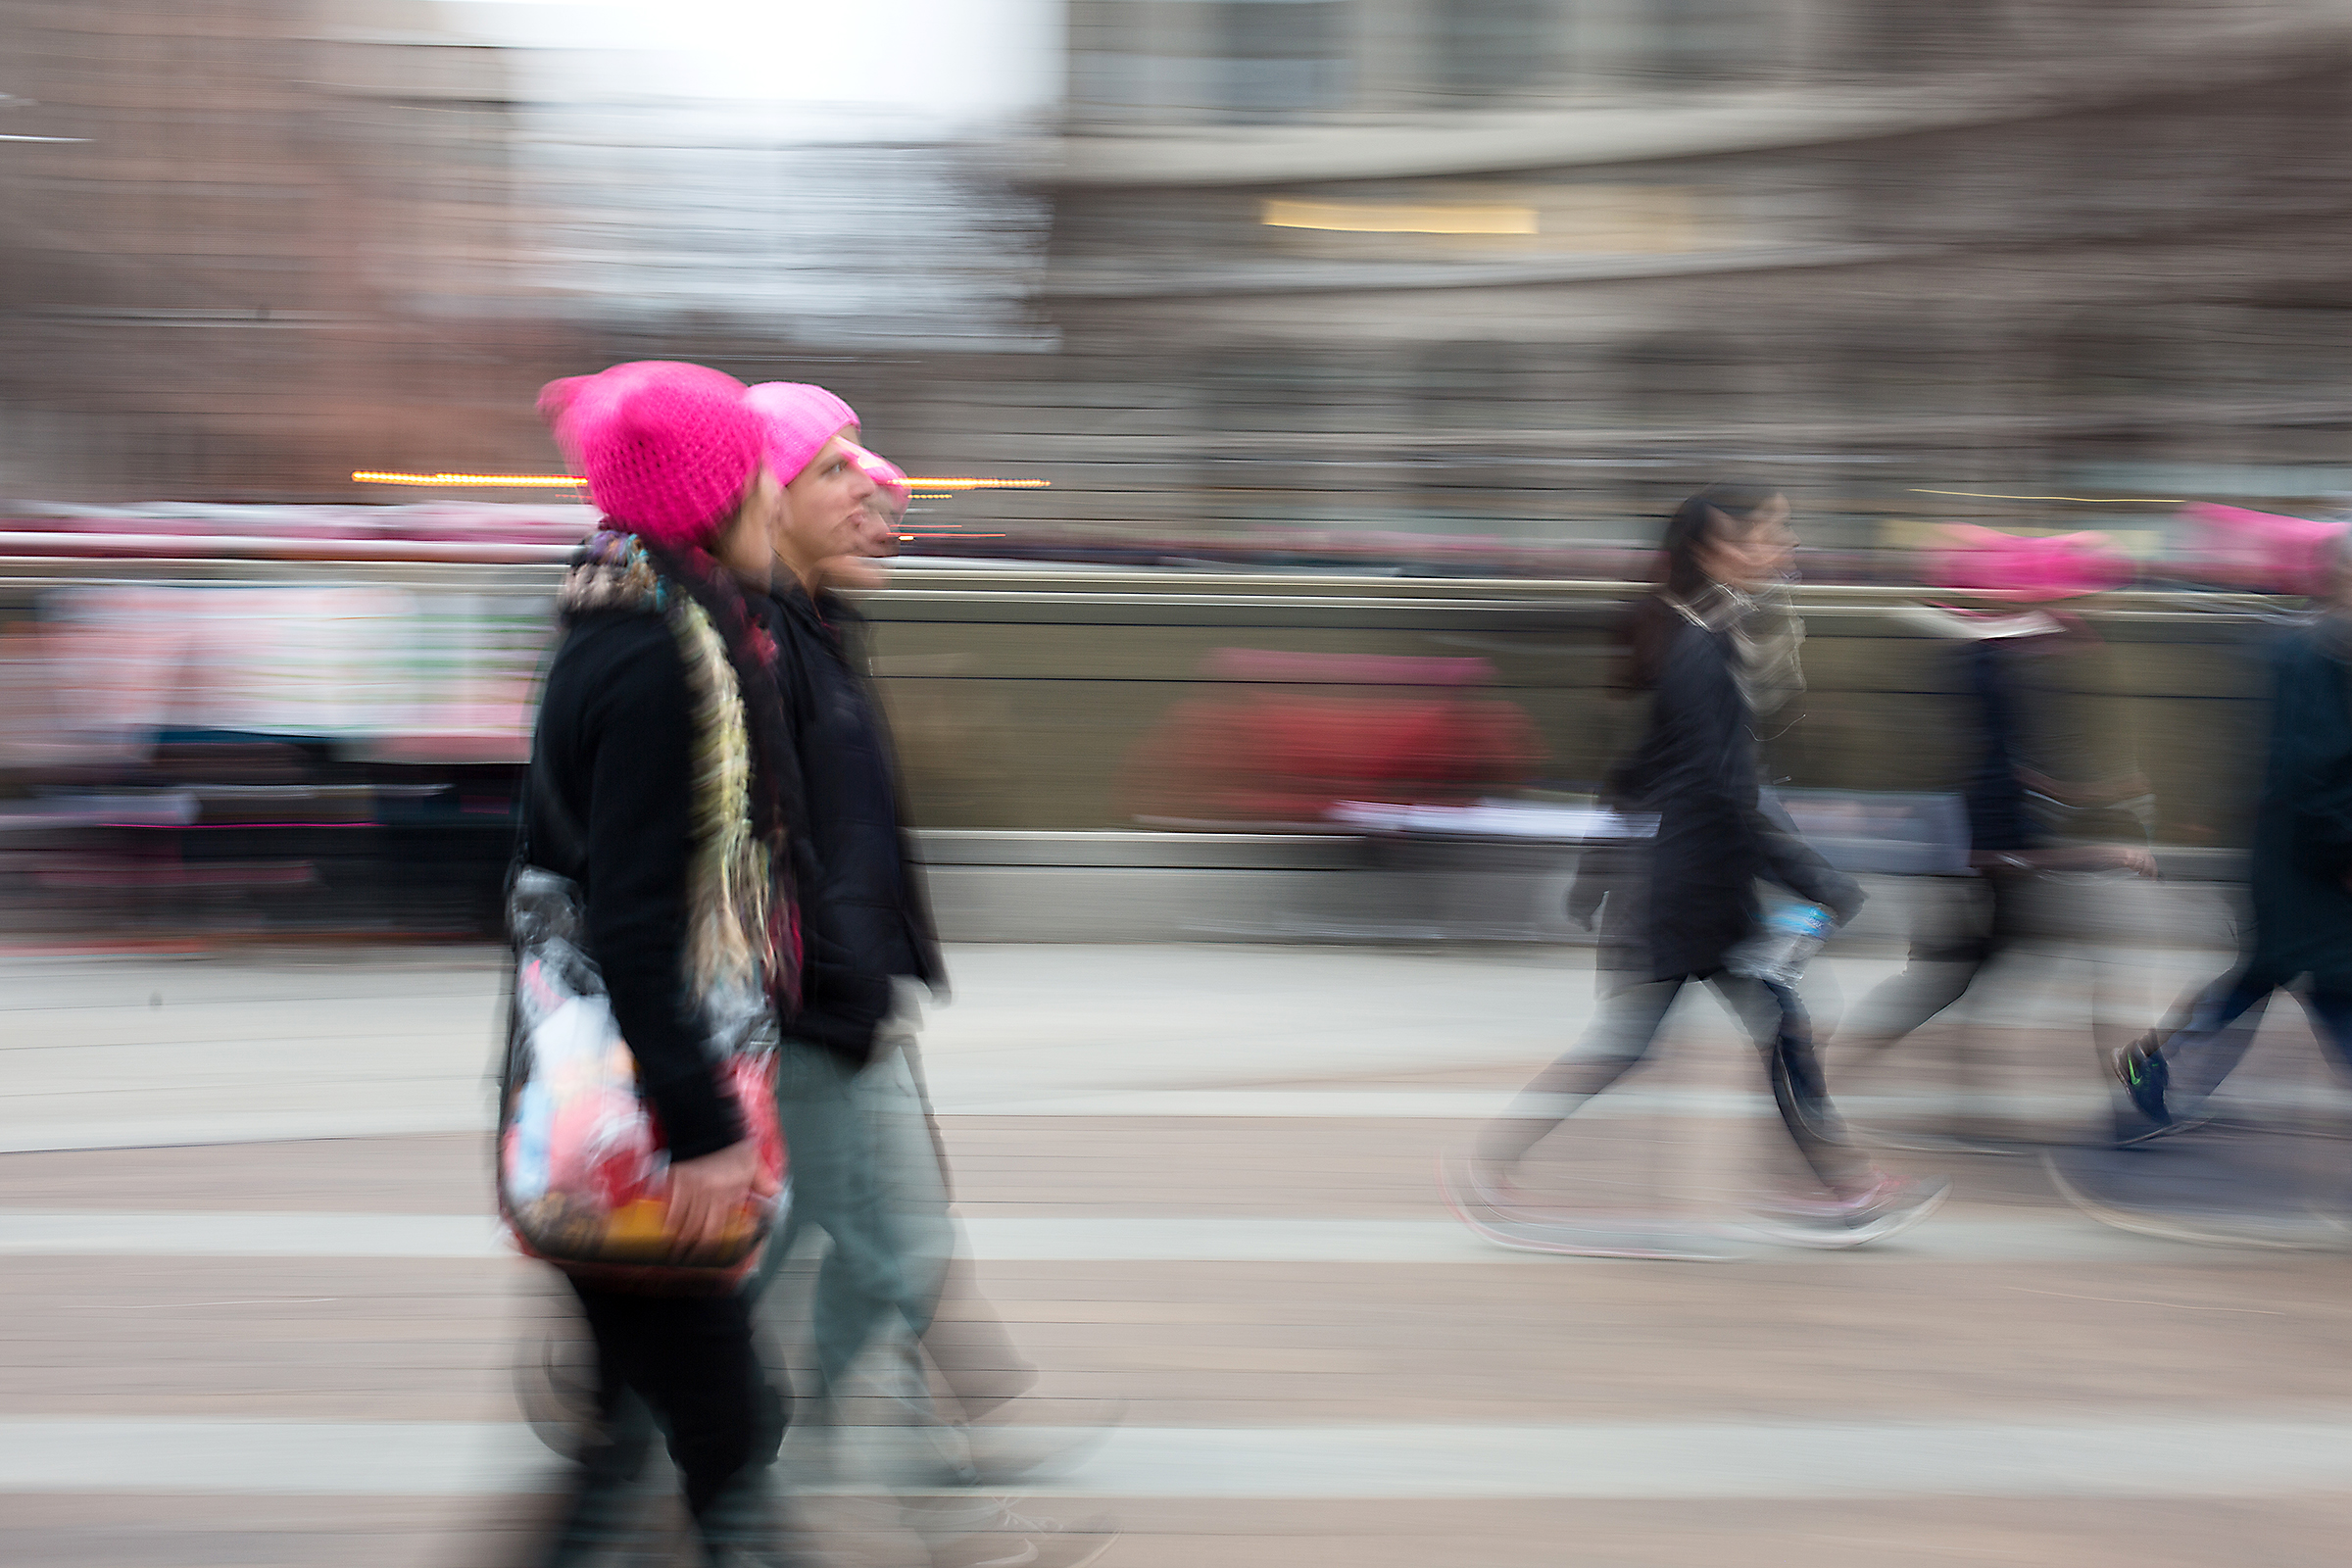 """Protesters wearing """"pussy hats"""" headed to the metro as the crowd at the 2017 Women's March in Washington D.C. began to disperse."""